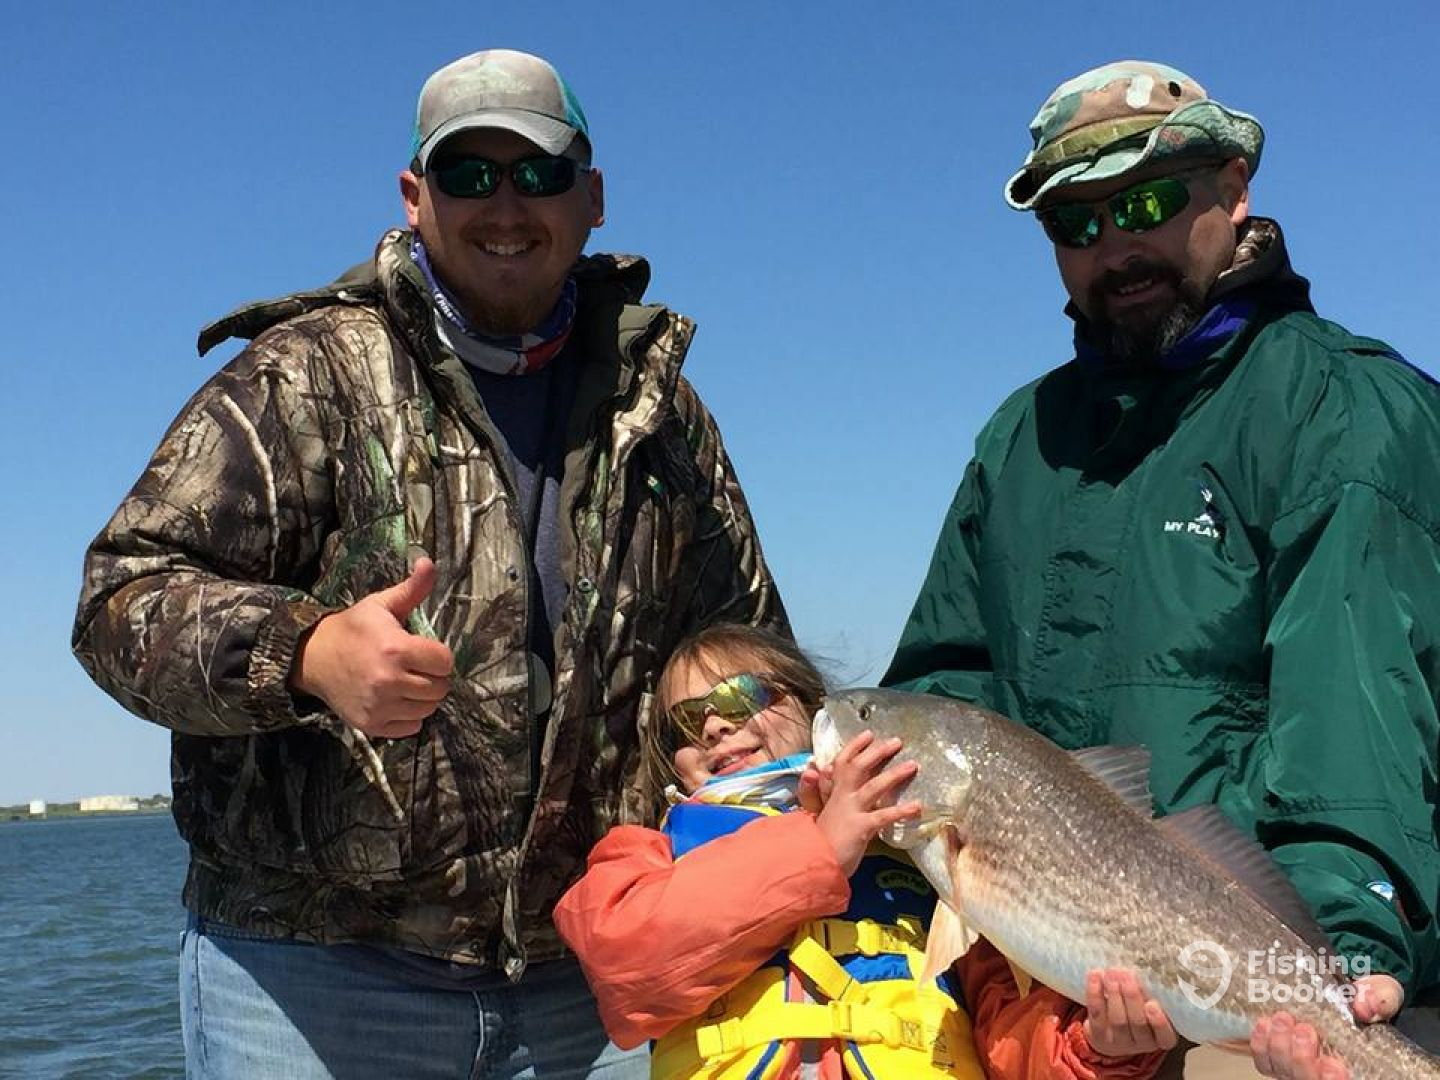 First redfish for this happy little customer!